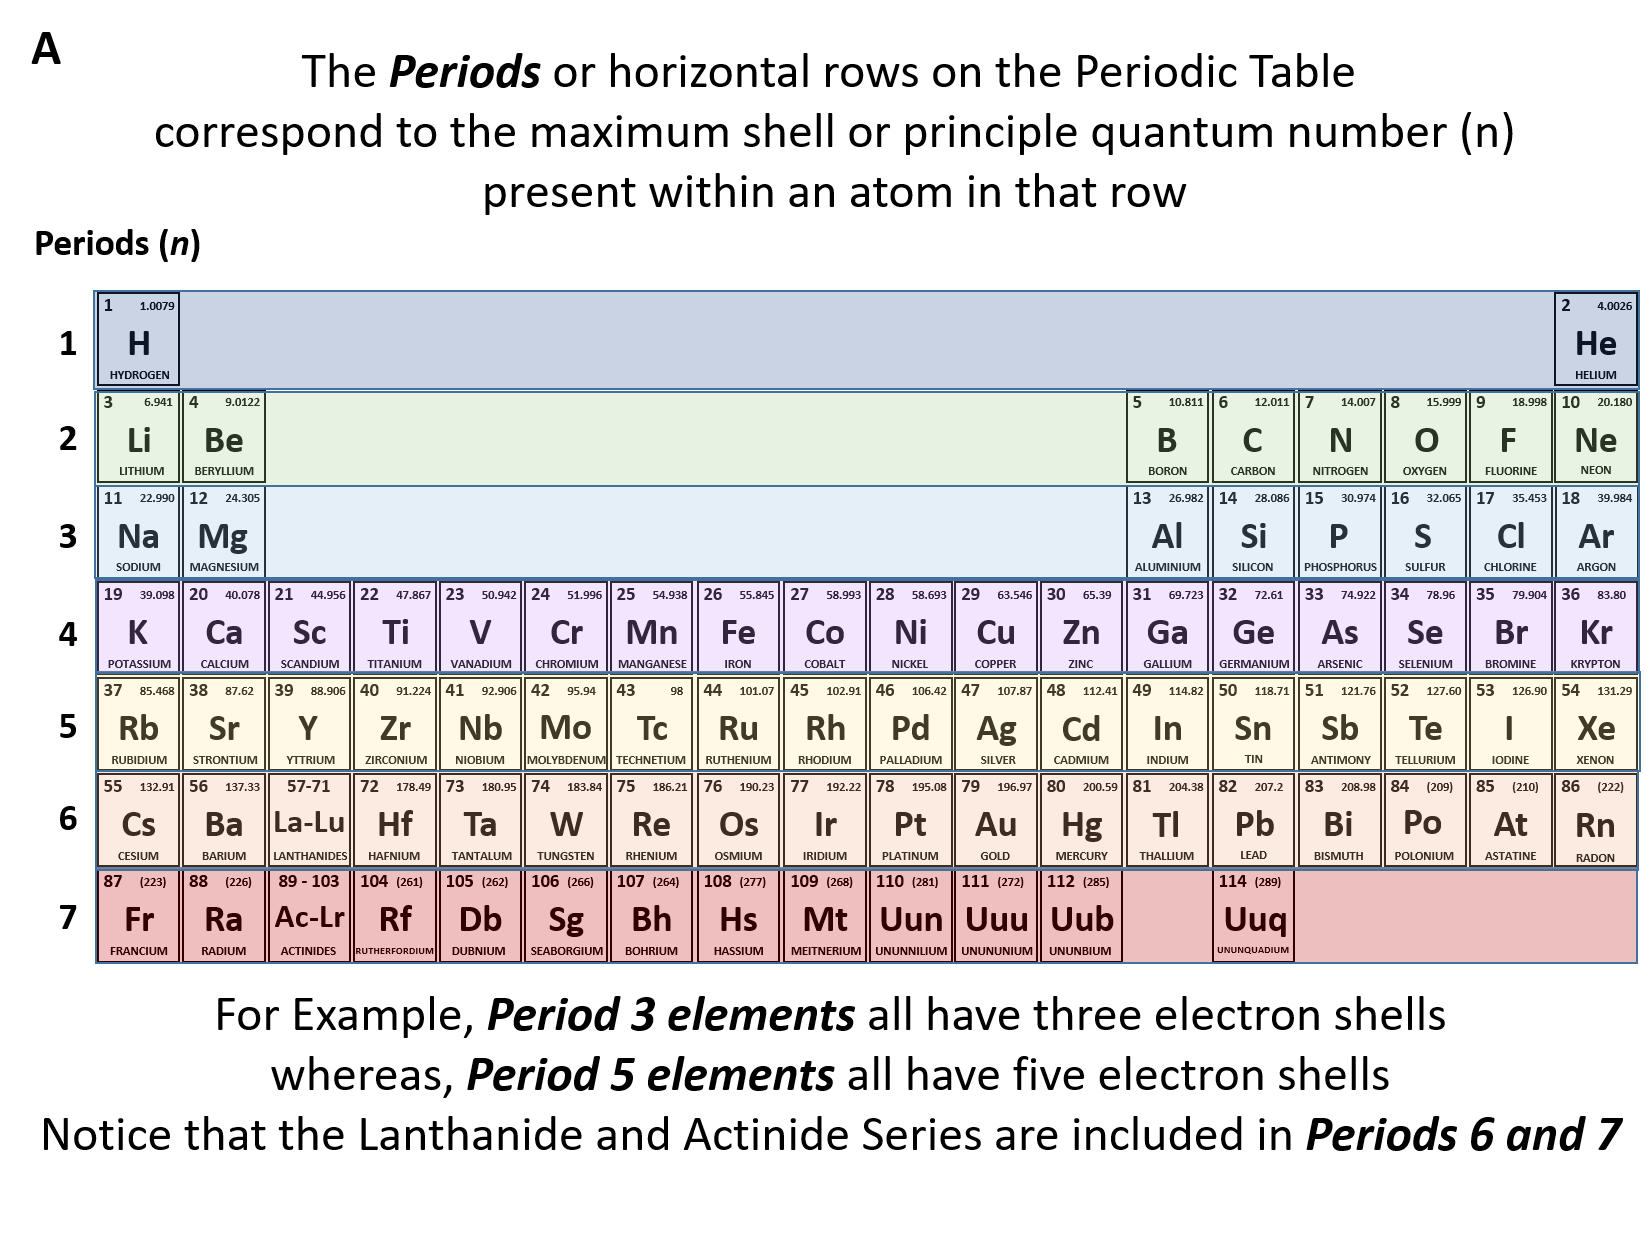 Trends In The Periodic Table Worksheet Answers